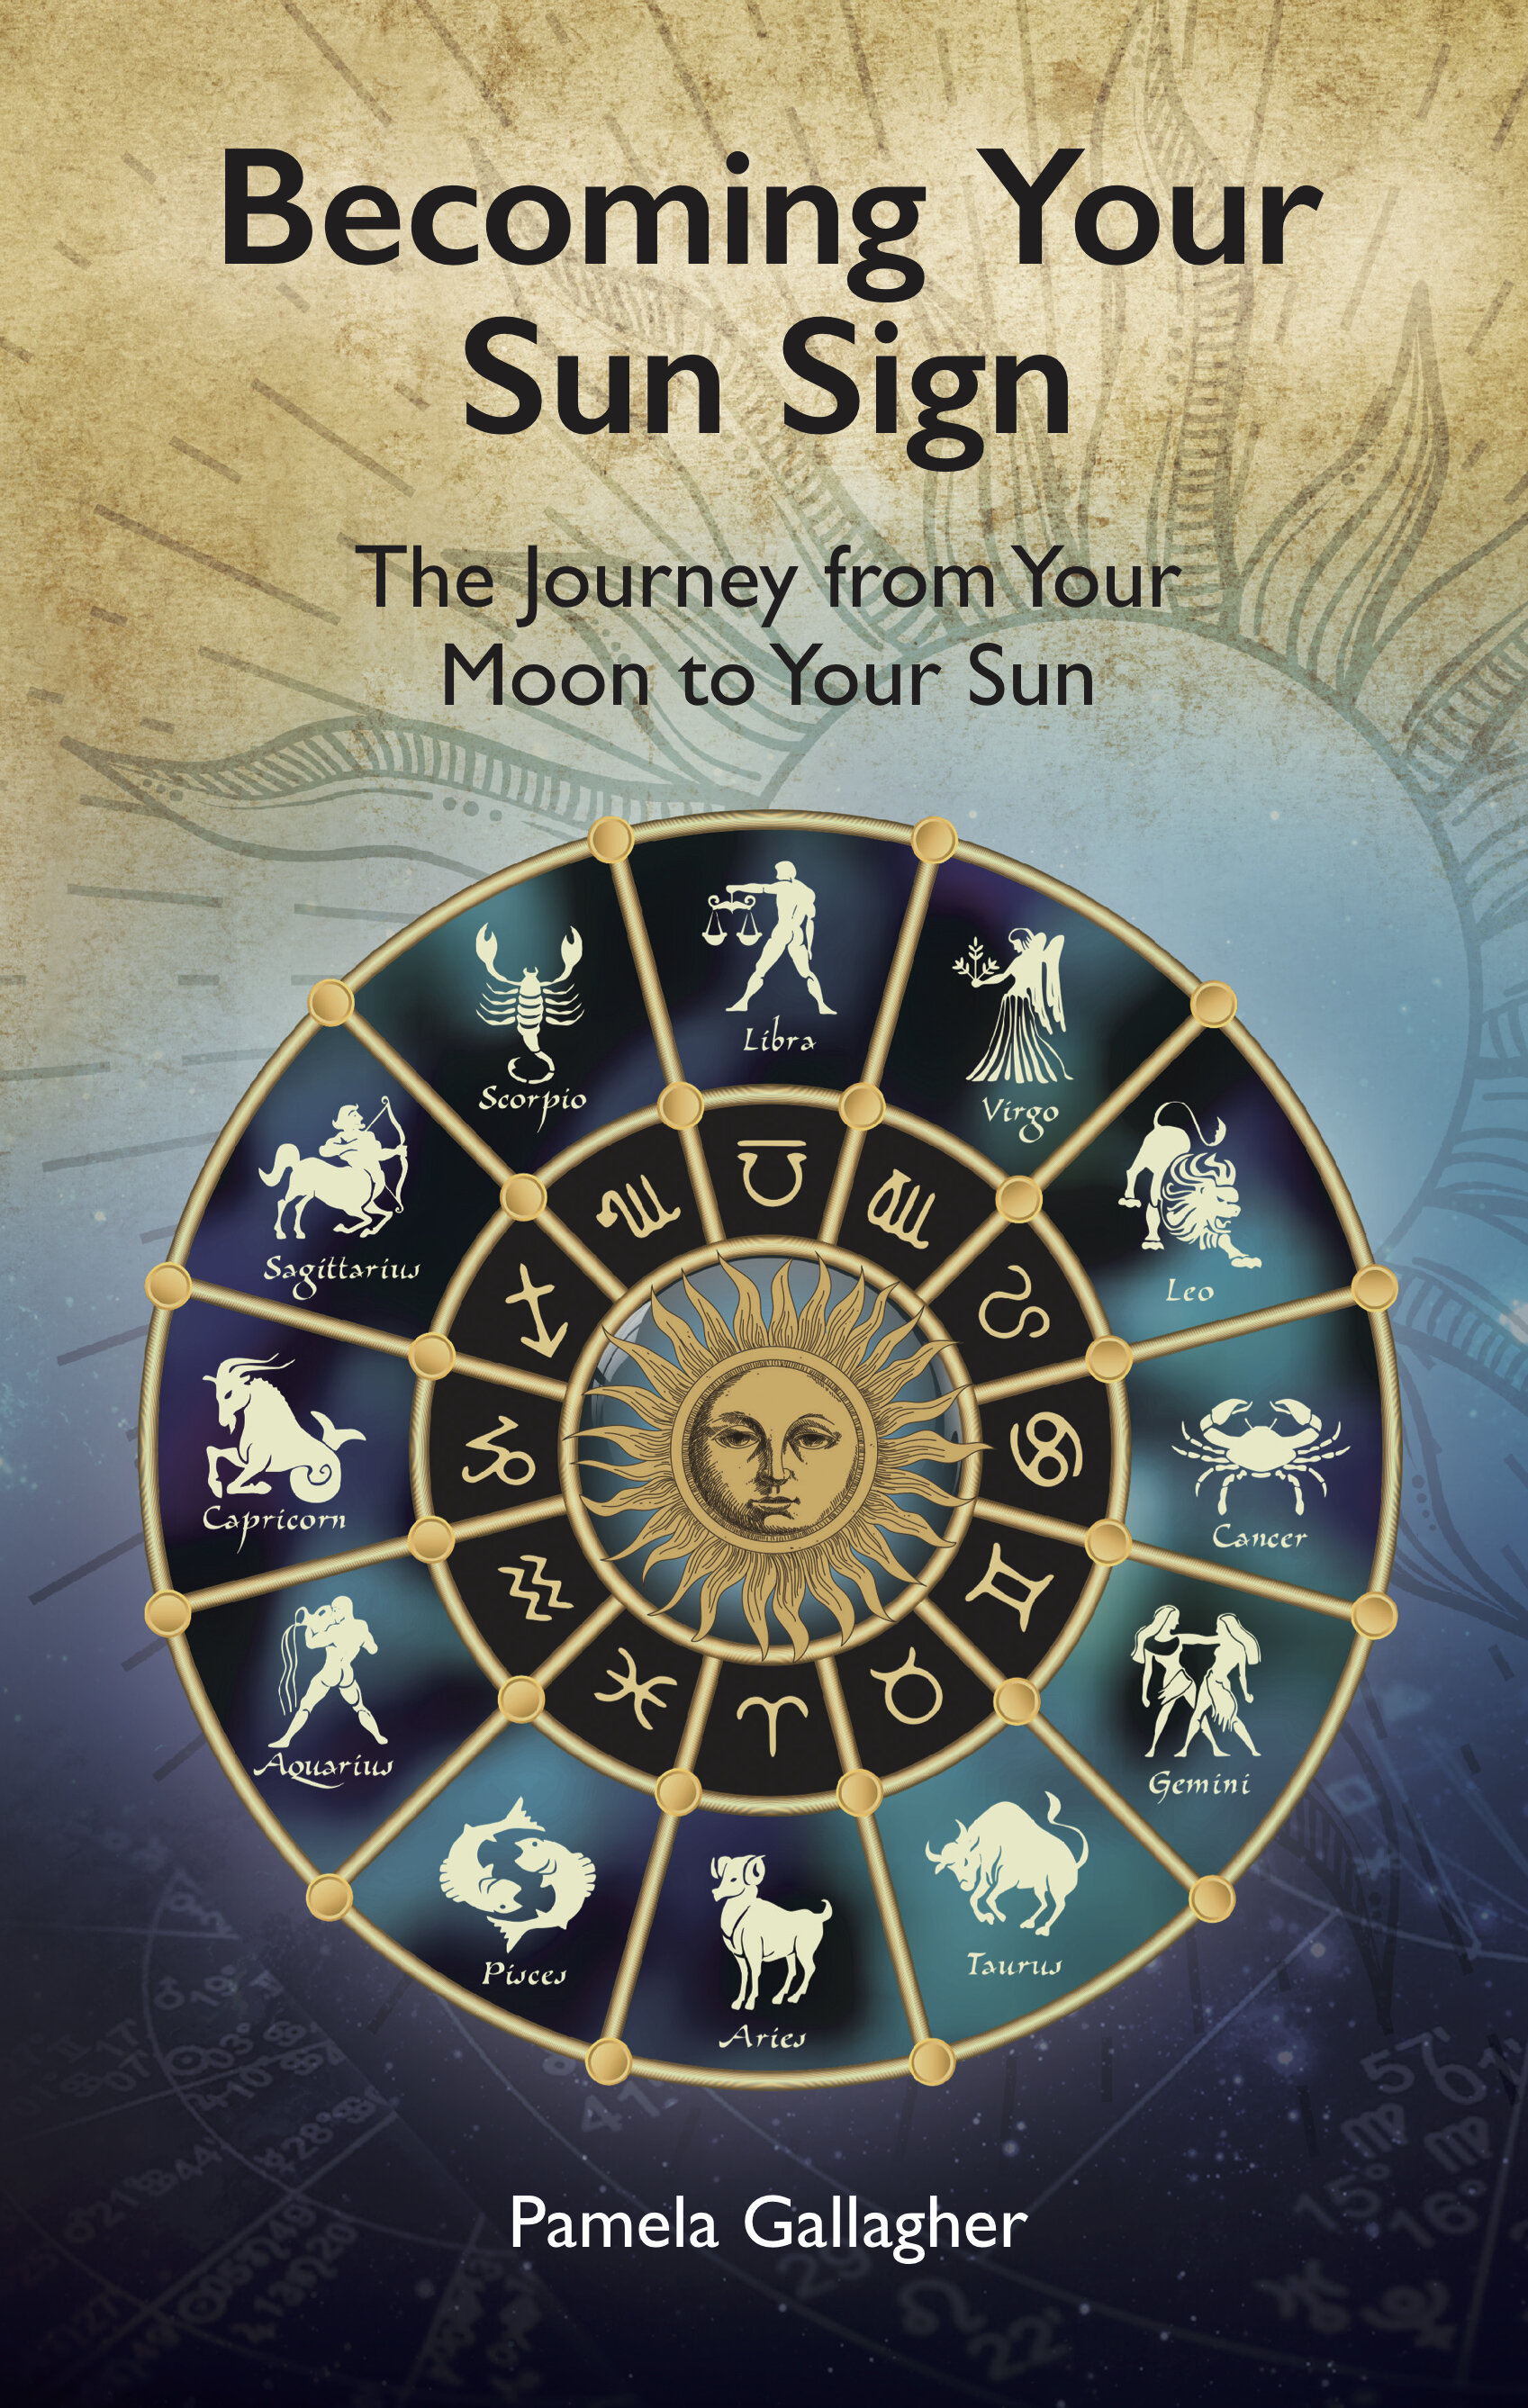 Becoming Your Sun Sign: by Pamela Gallagher